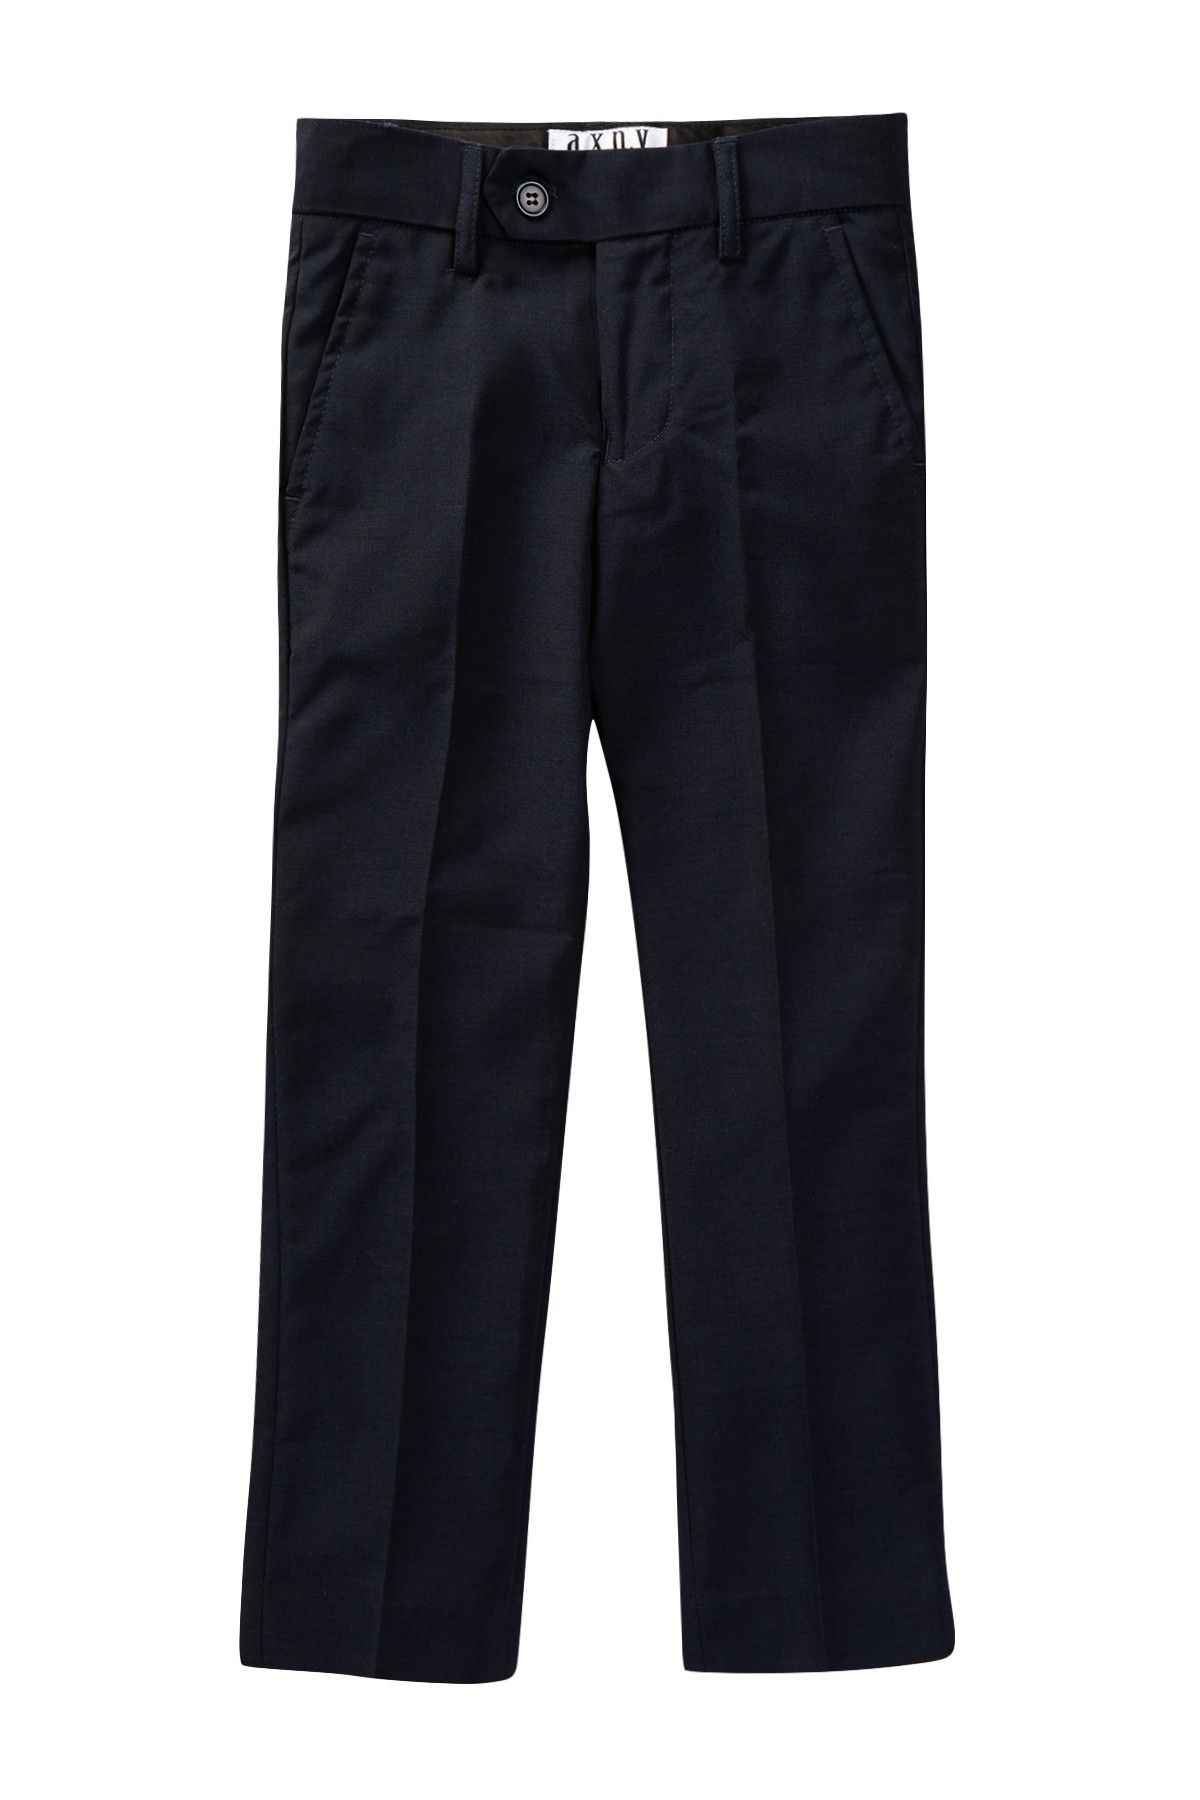 Classic Pant (Baby, Toddler, Little Boys, & Big Boys)